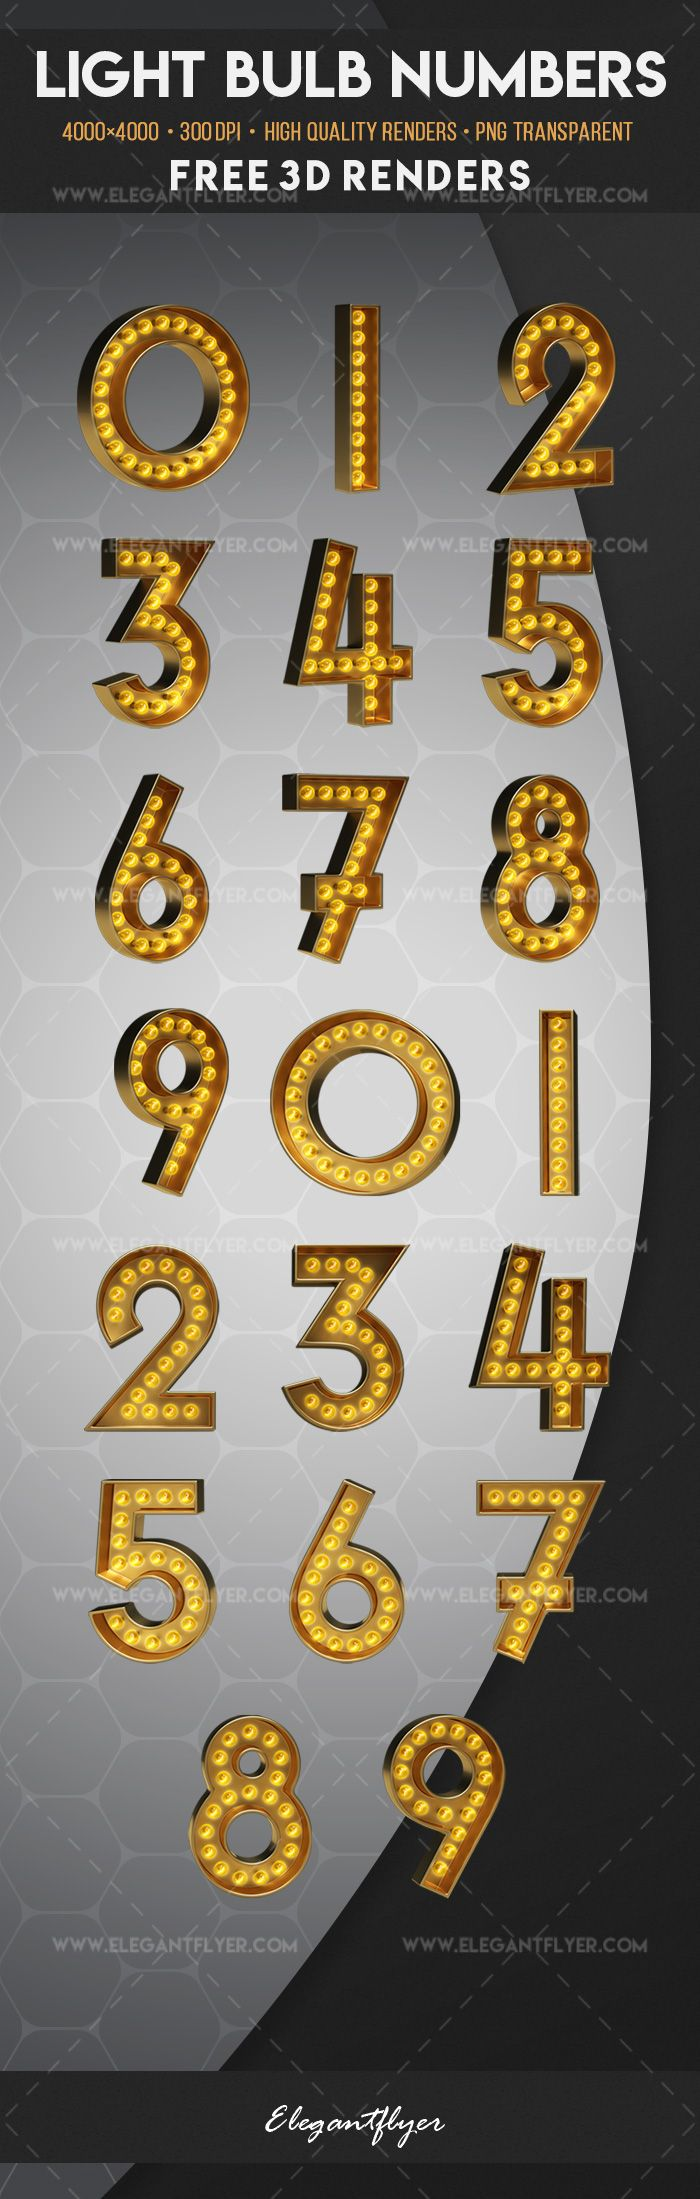 Light Bulb Numbers – Free 3d Render Templates